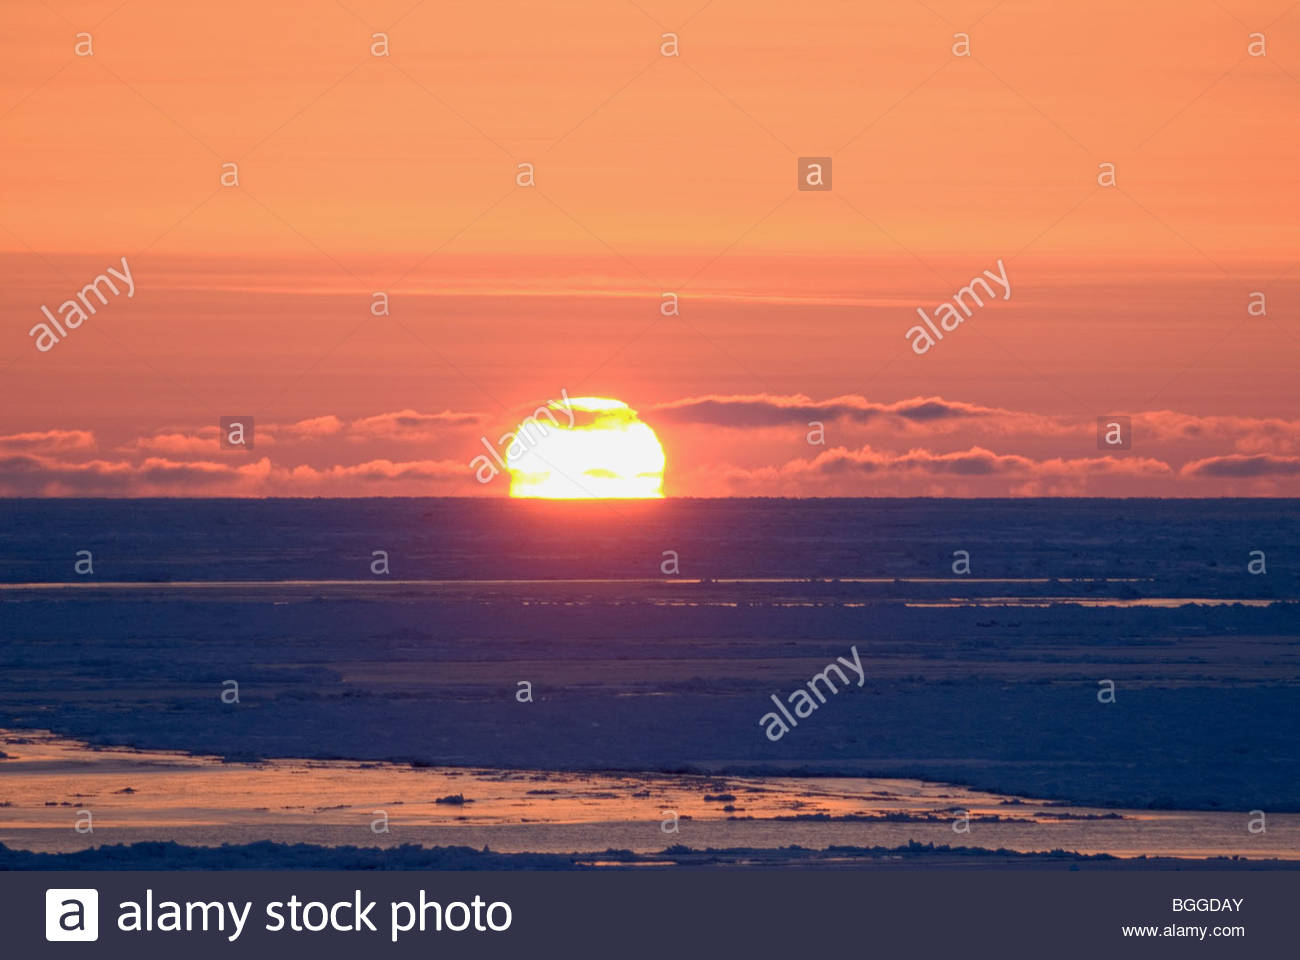 Alaska, Bering Sea. Sunset over the pack ice. Refraction Distortion. - Stock Image